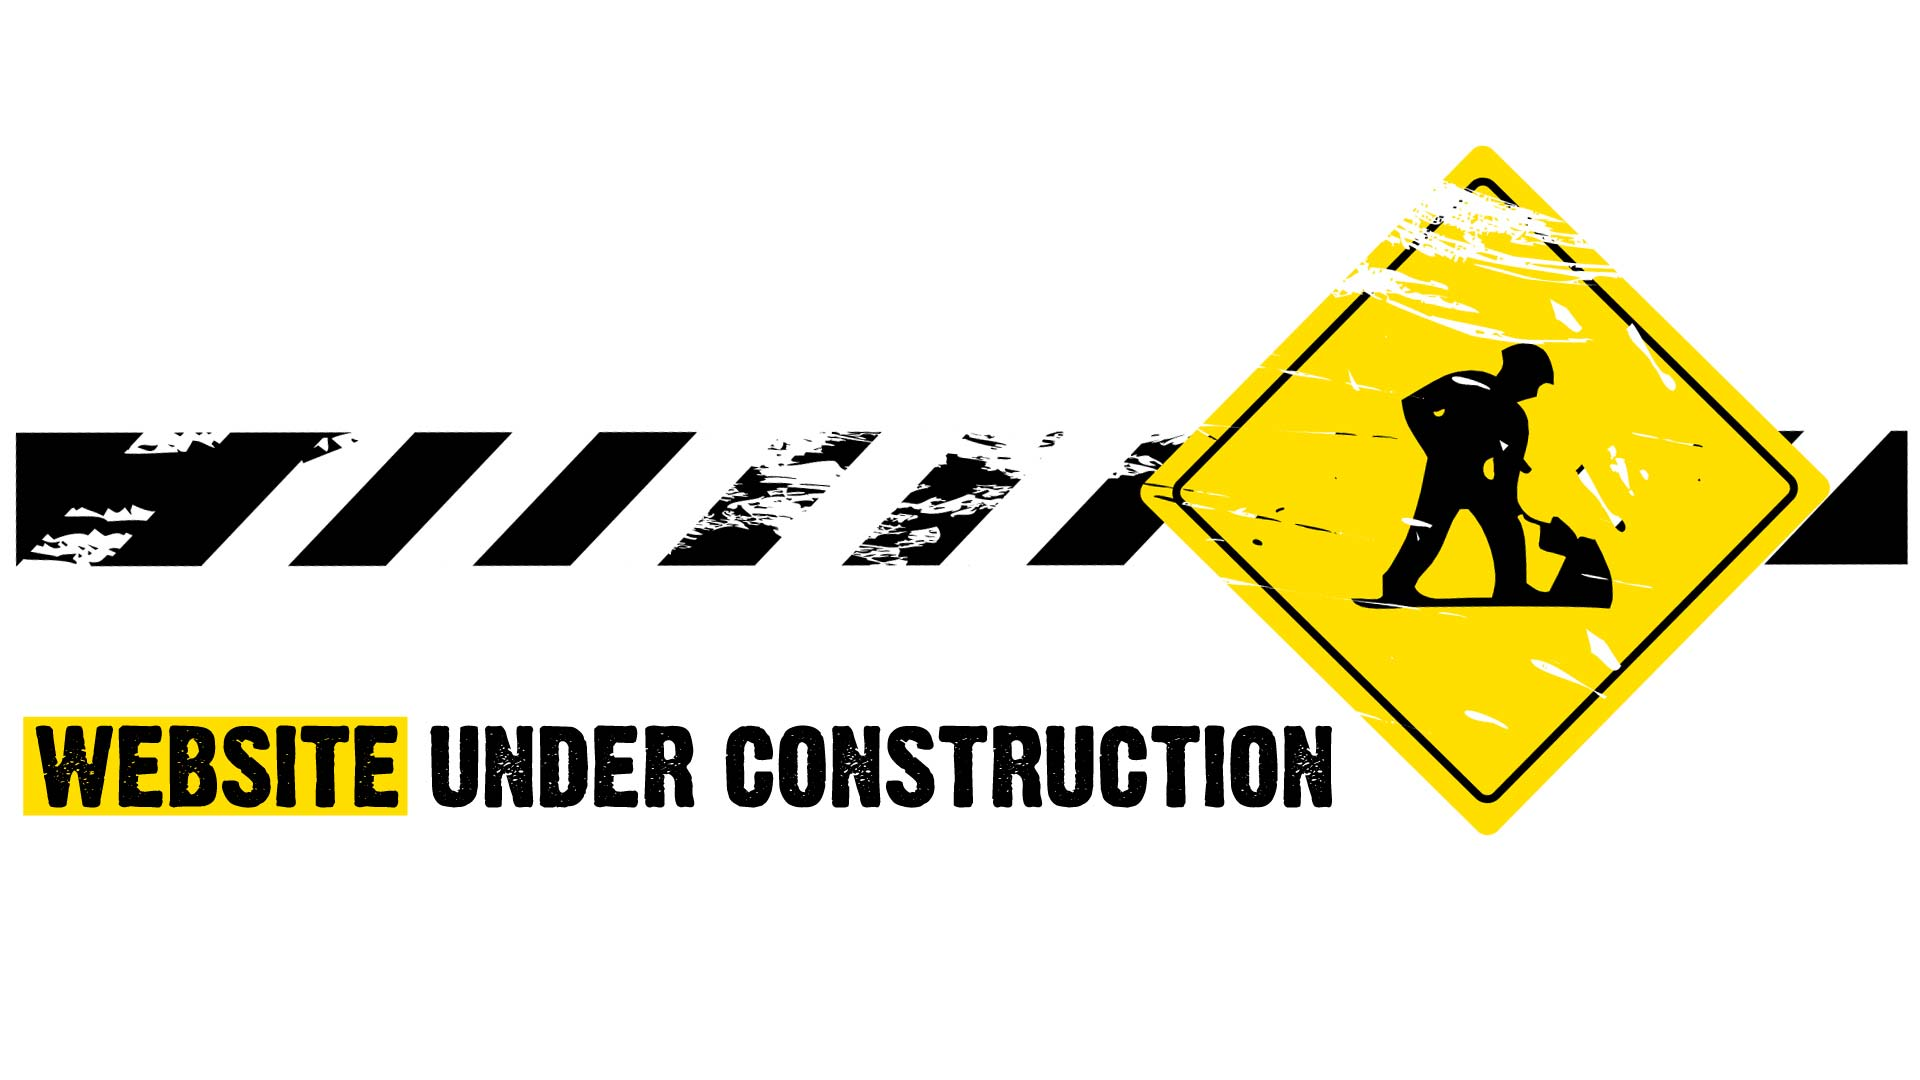 Under Construction PNG HD Free - 148321